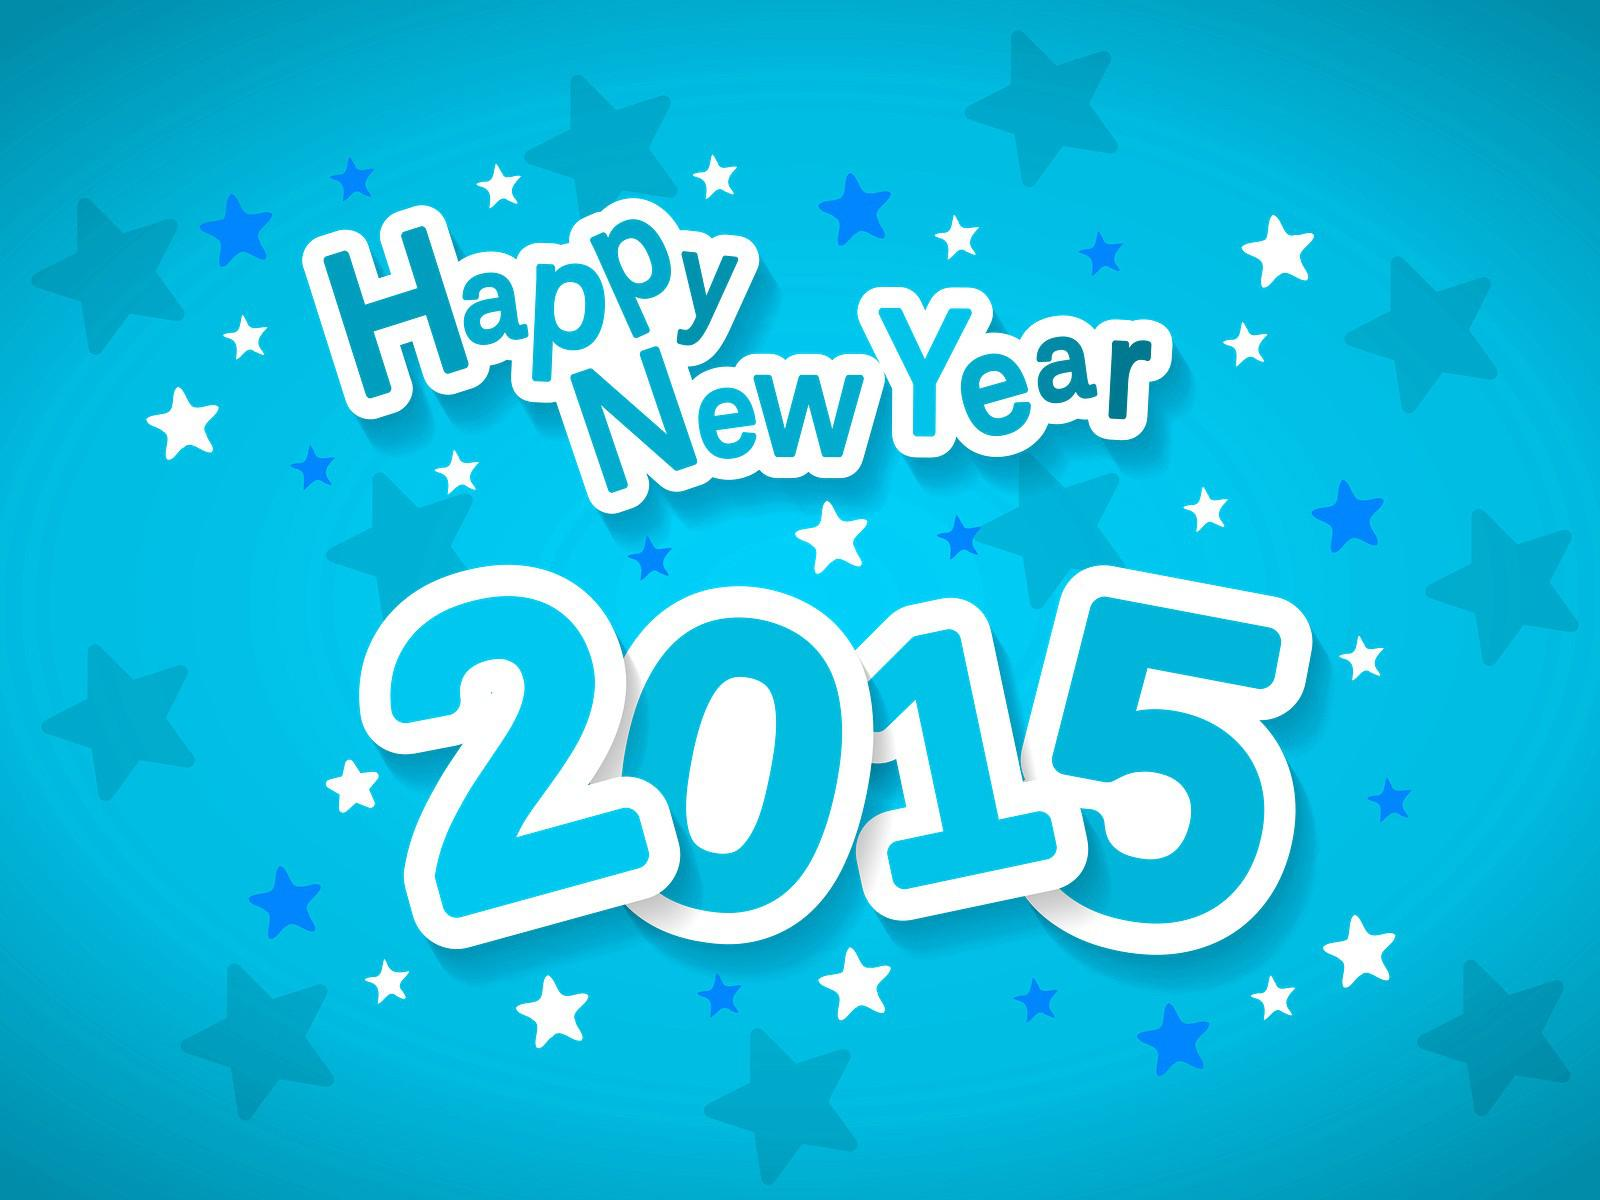 download best happy new year 2015 style blue wallpapers images free latestwall